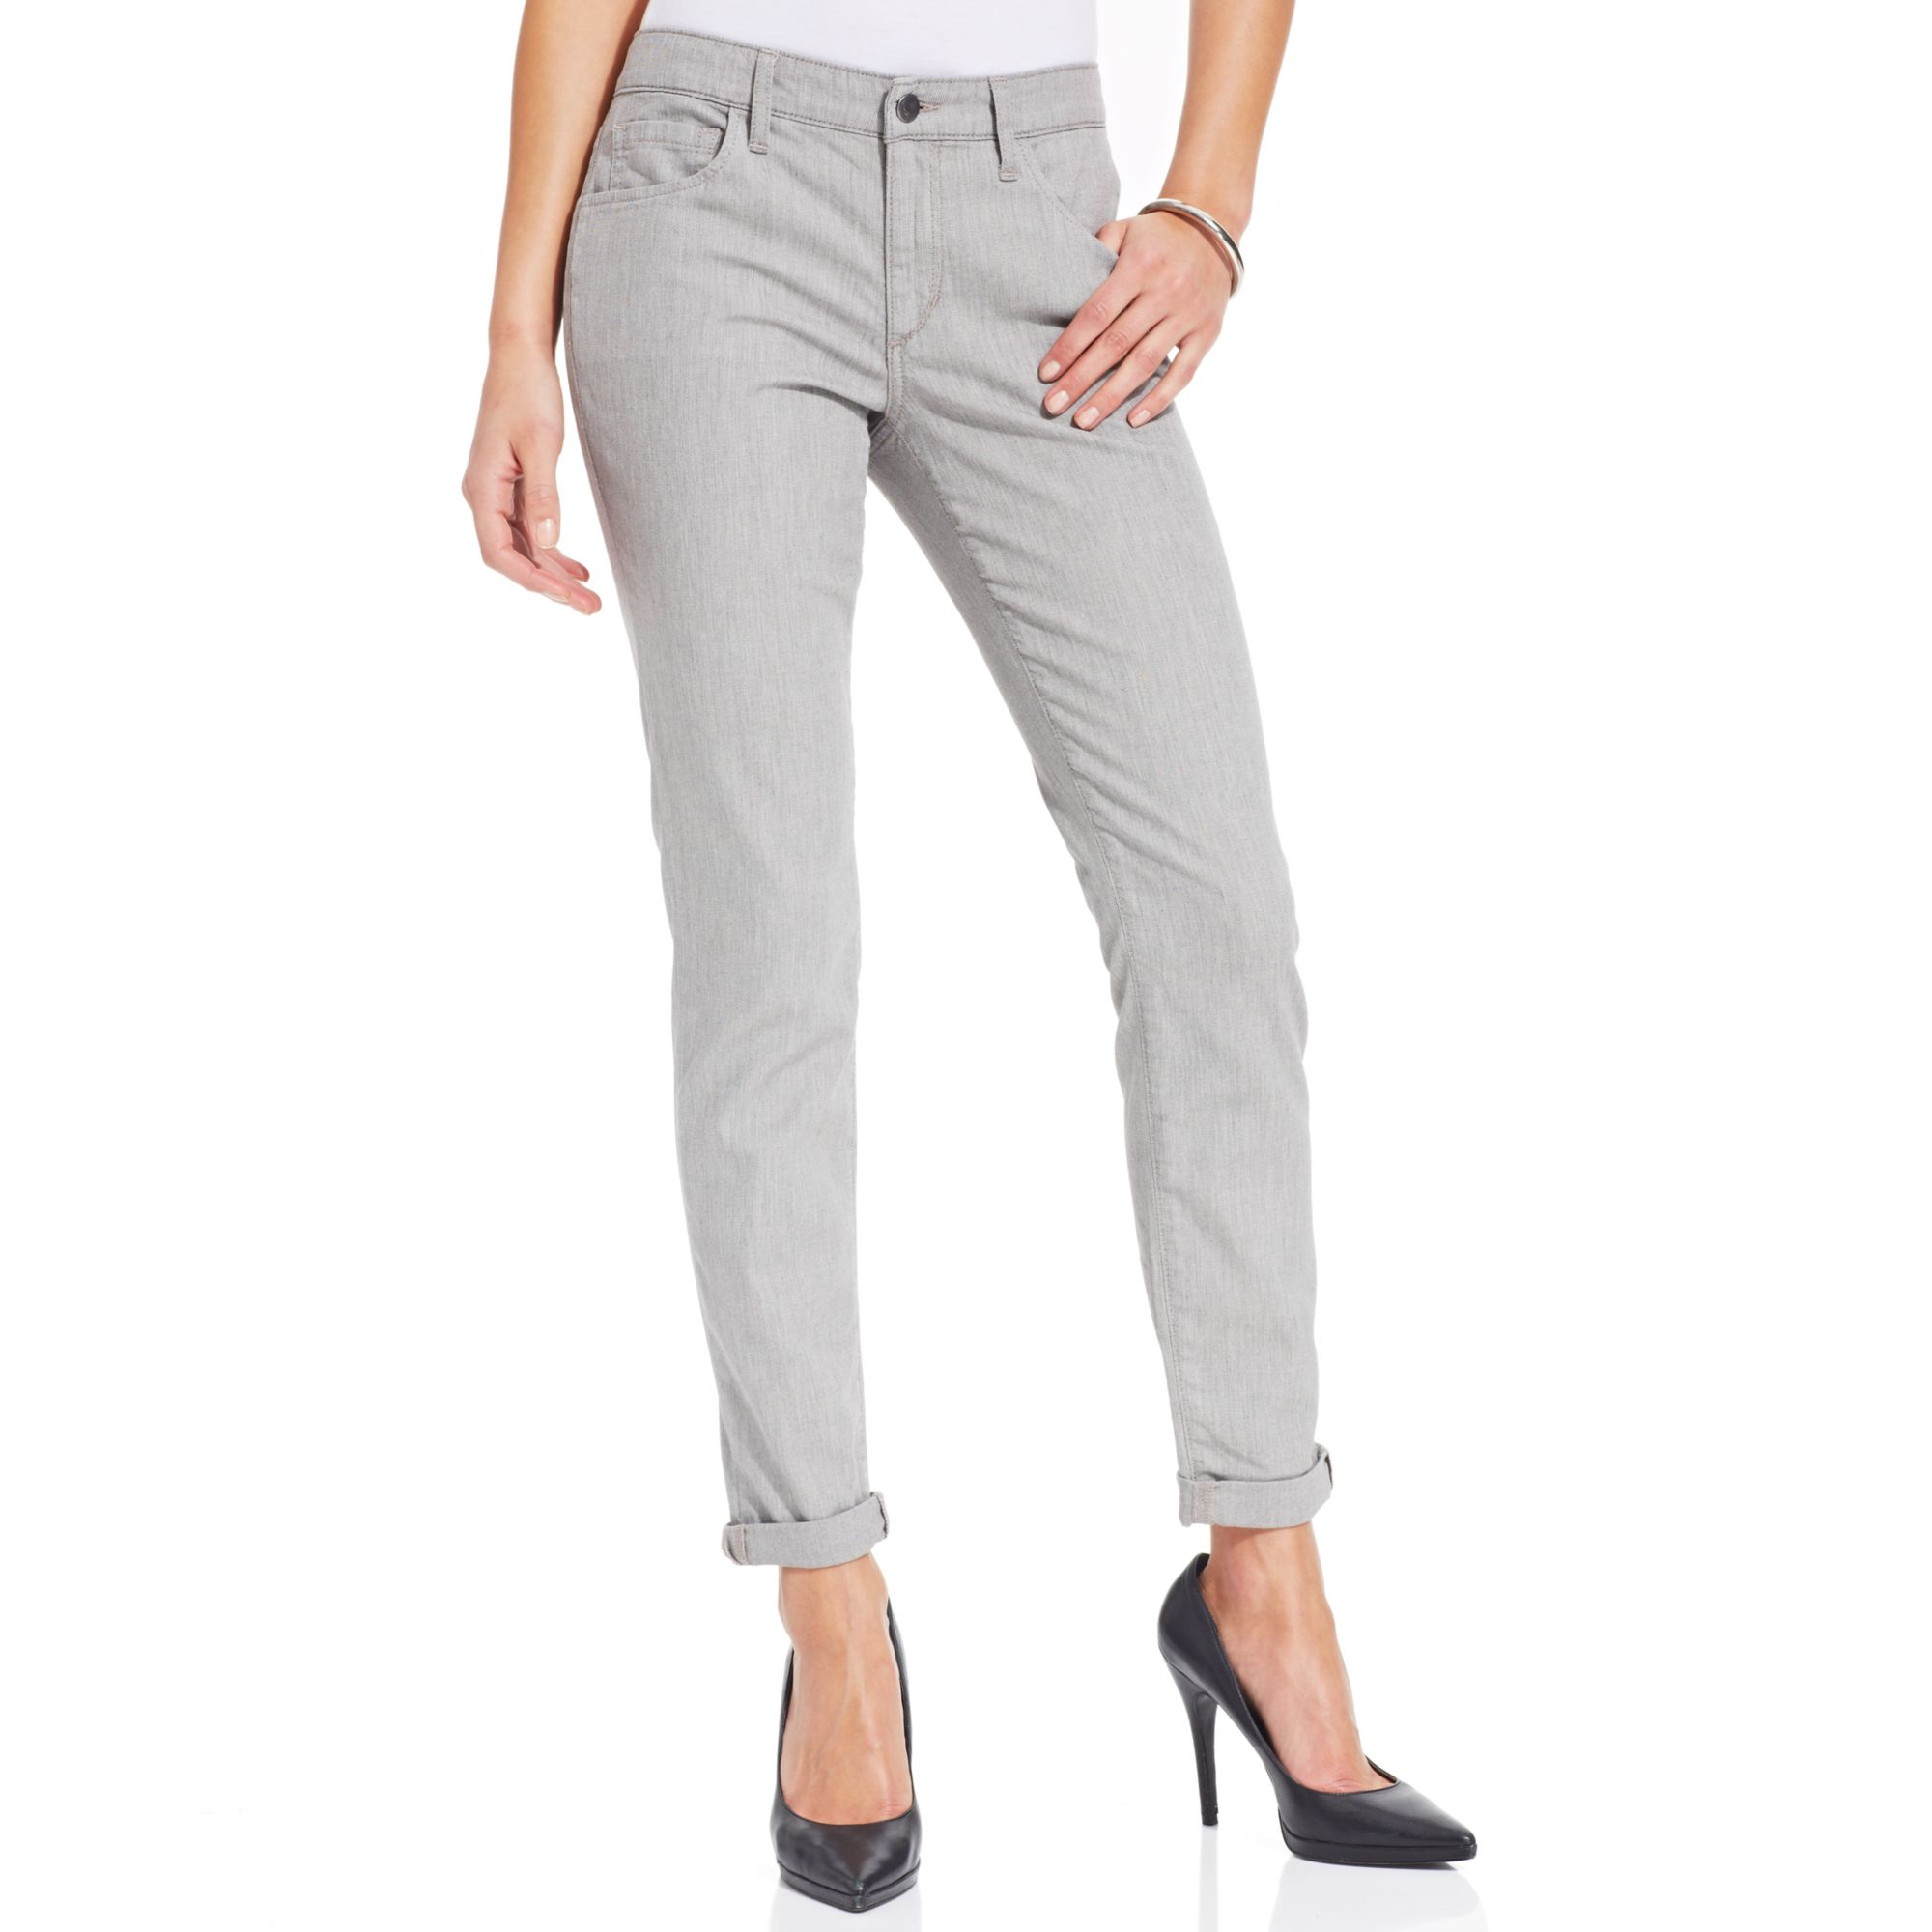 Joe 39 s jeans jeans grey chambray pants in gray greystone for Chambray jeans